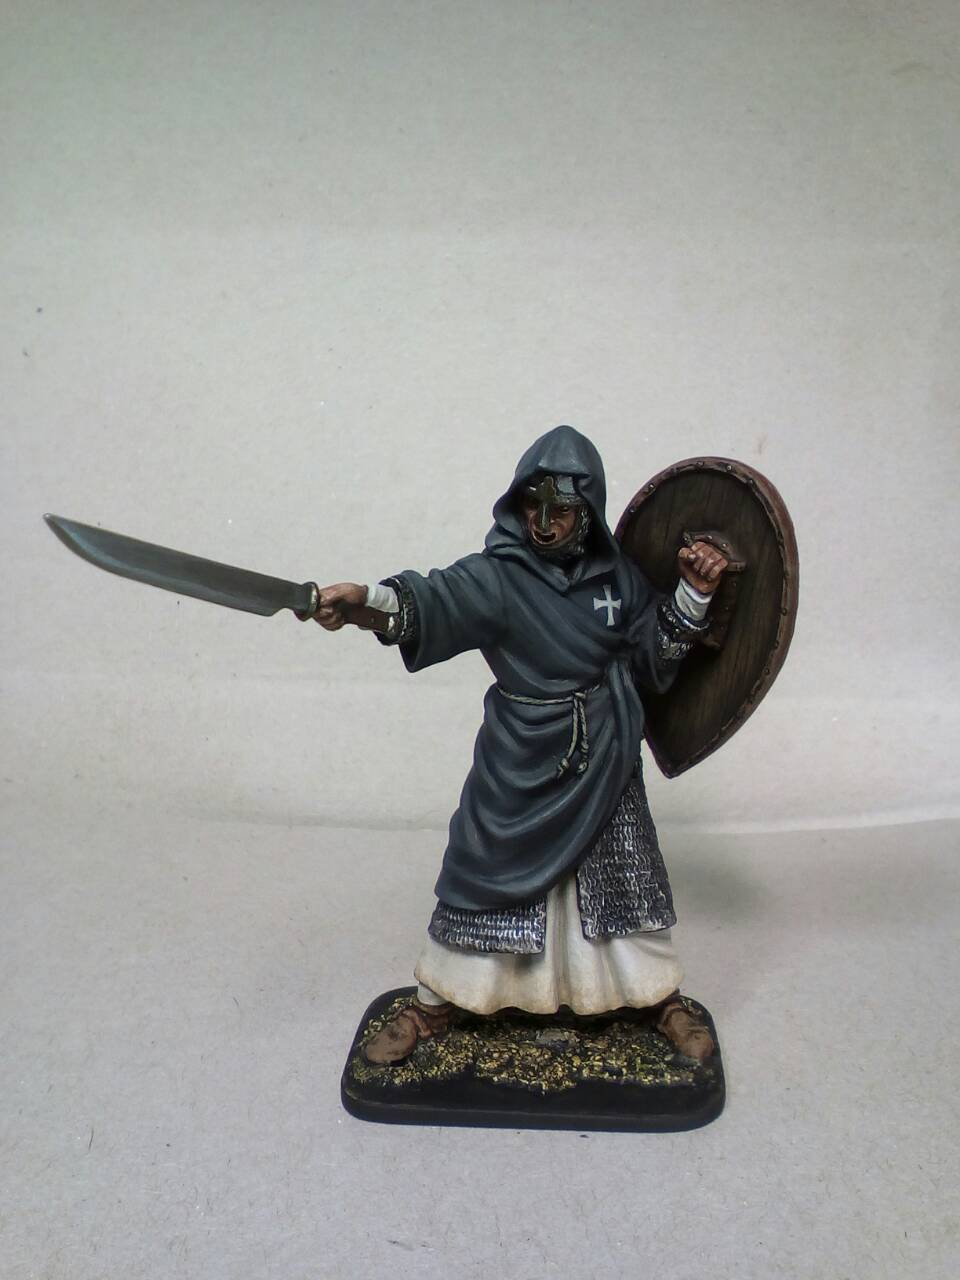 Lead soldier toy.Monk-knight, 12th cent,detailed toy,detailed,Elite.handpainted